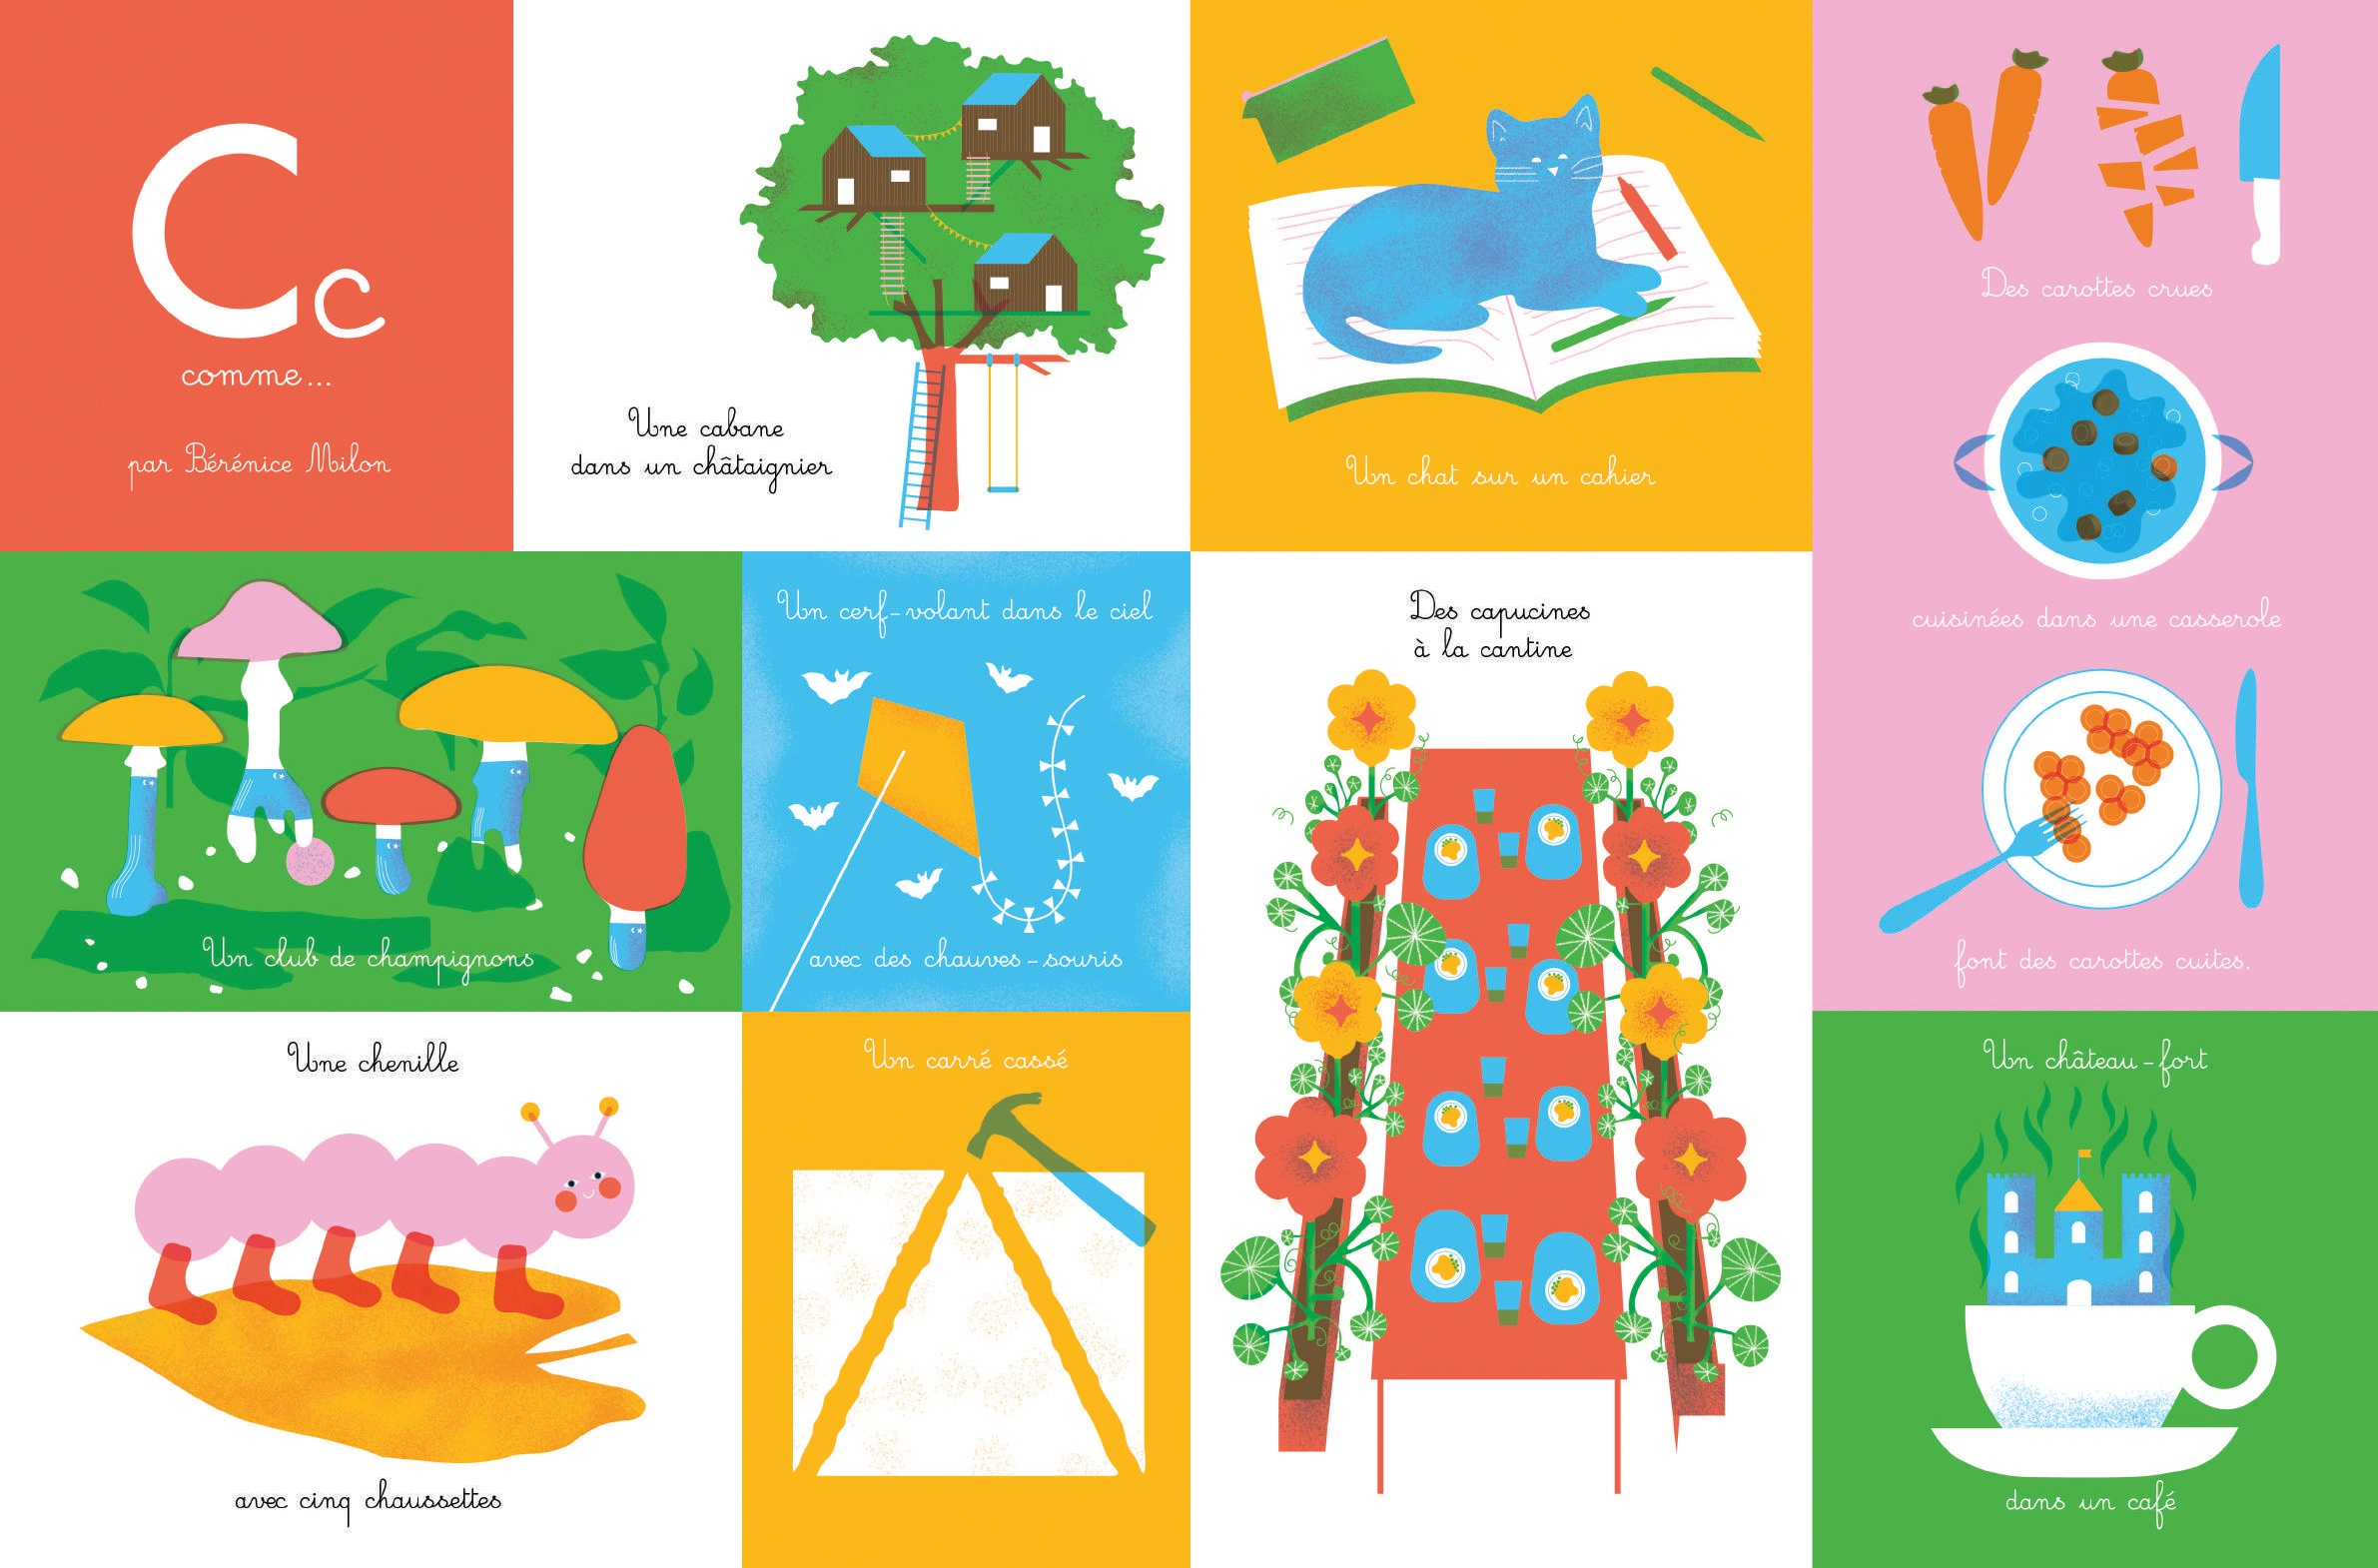 Maison Georges Thepicturebookagency